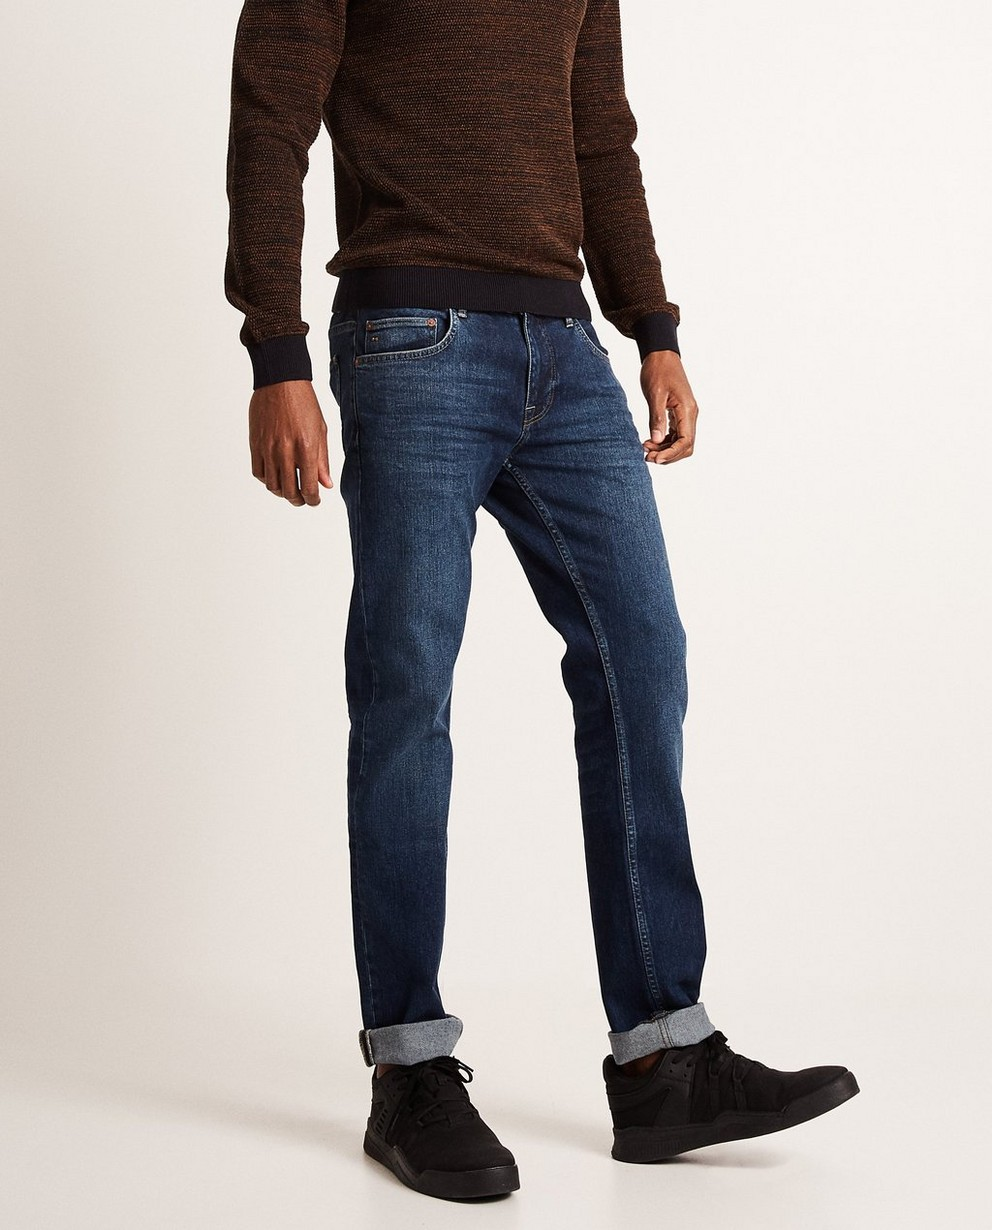 Jeans - navy - Slim fit jeans SMITH